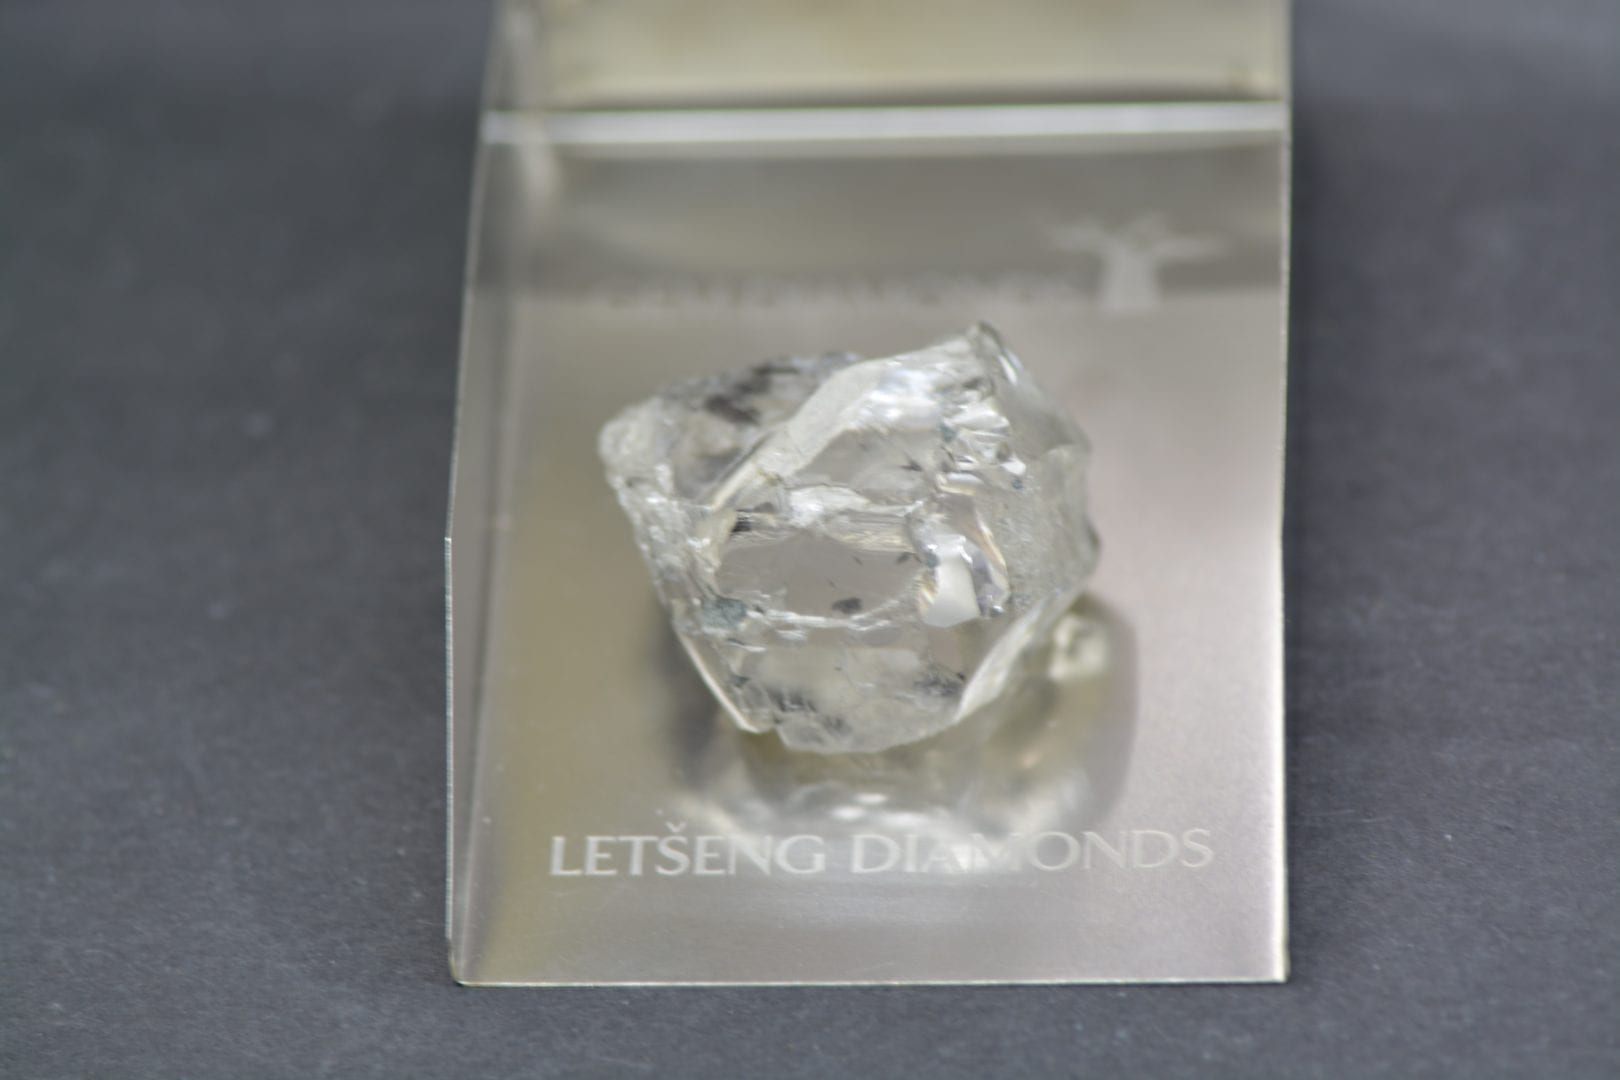 Recovery of 115 carat diamond